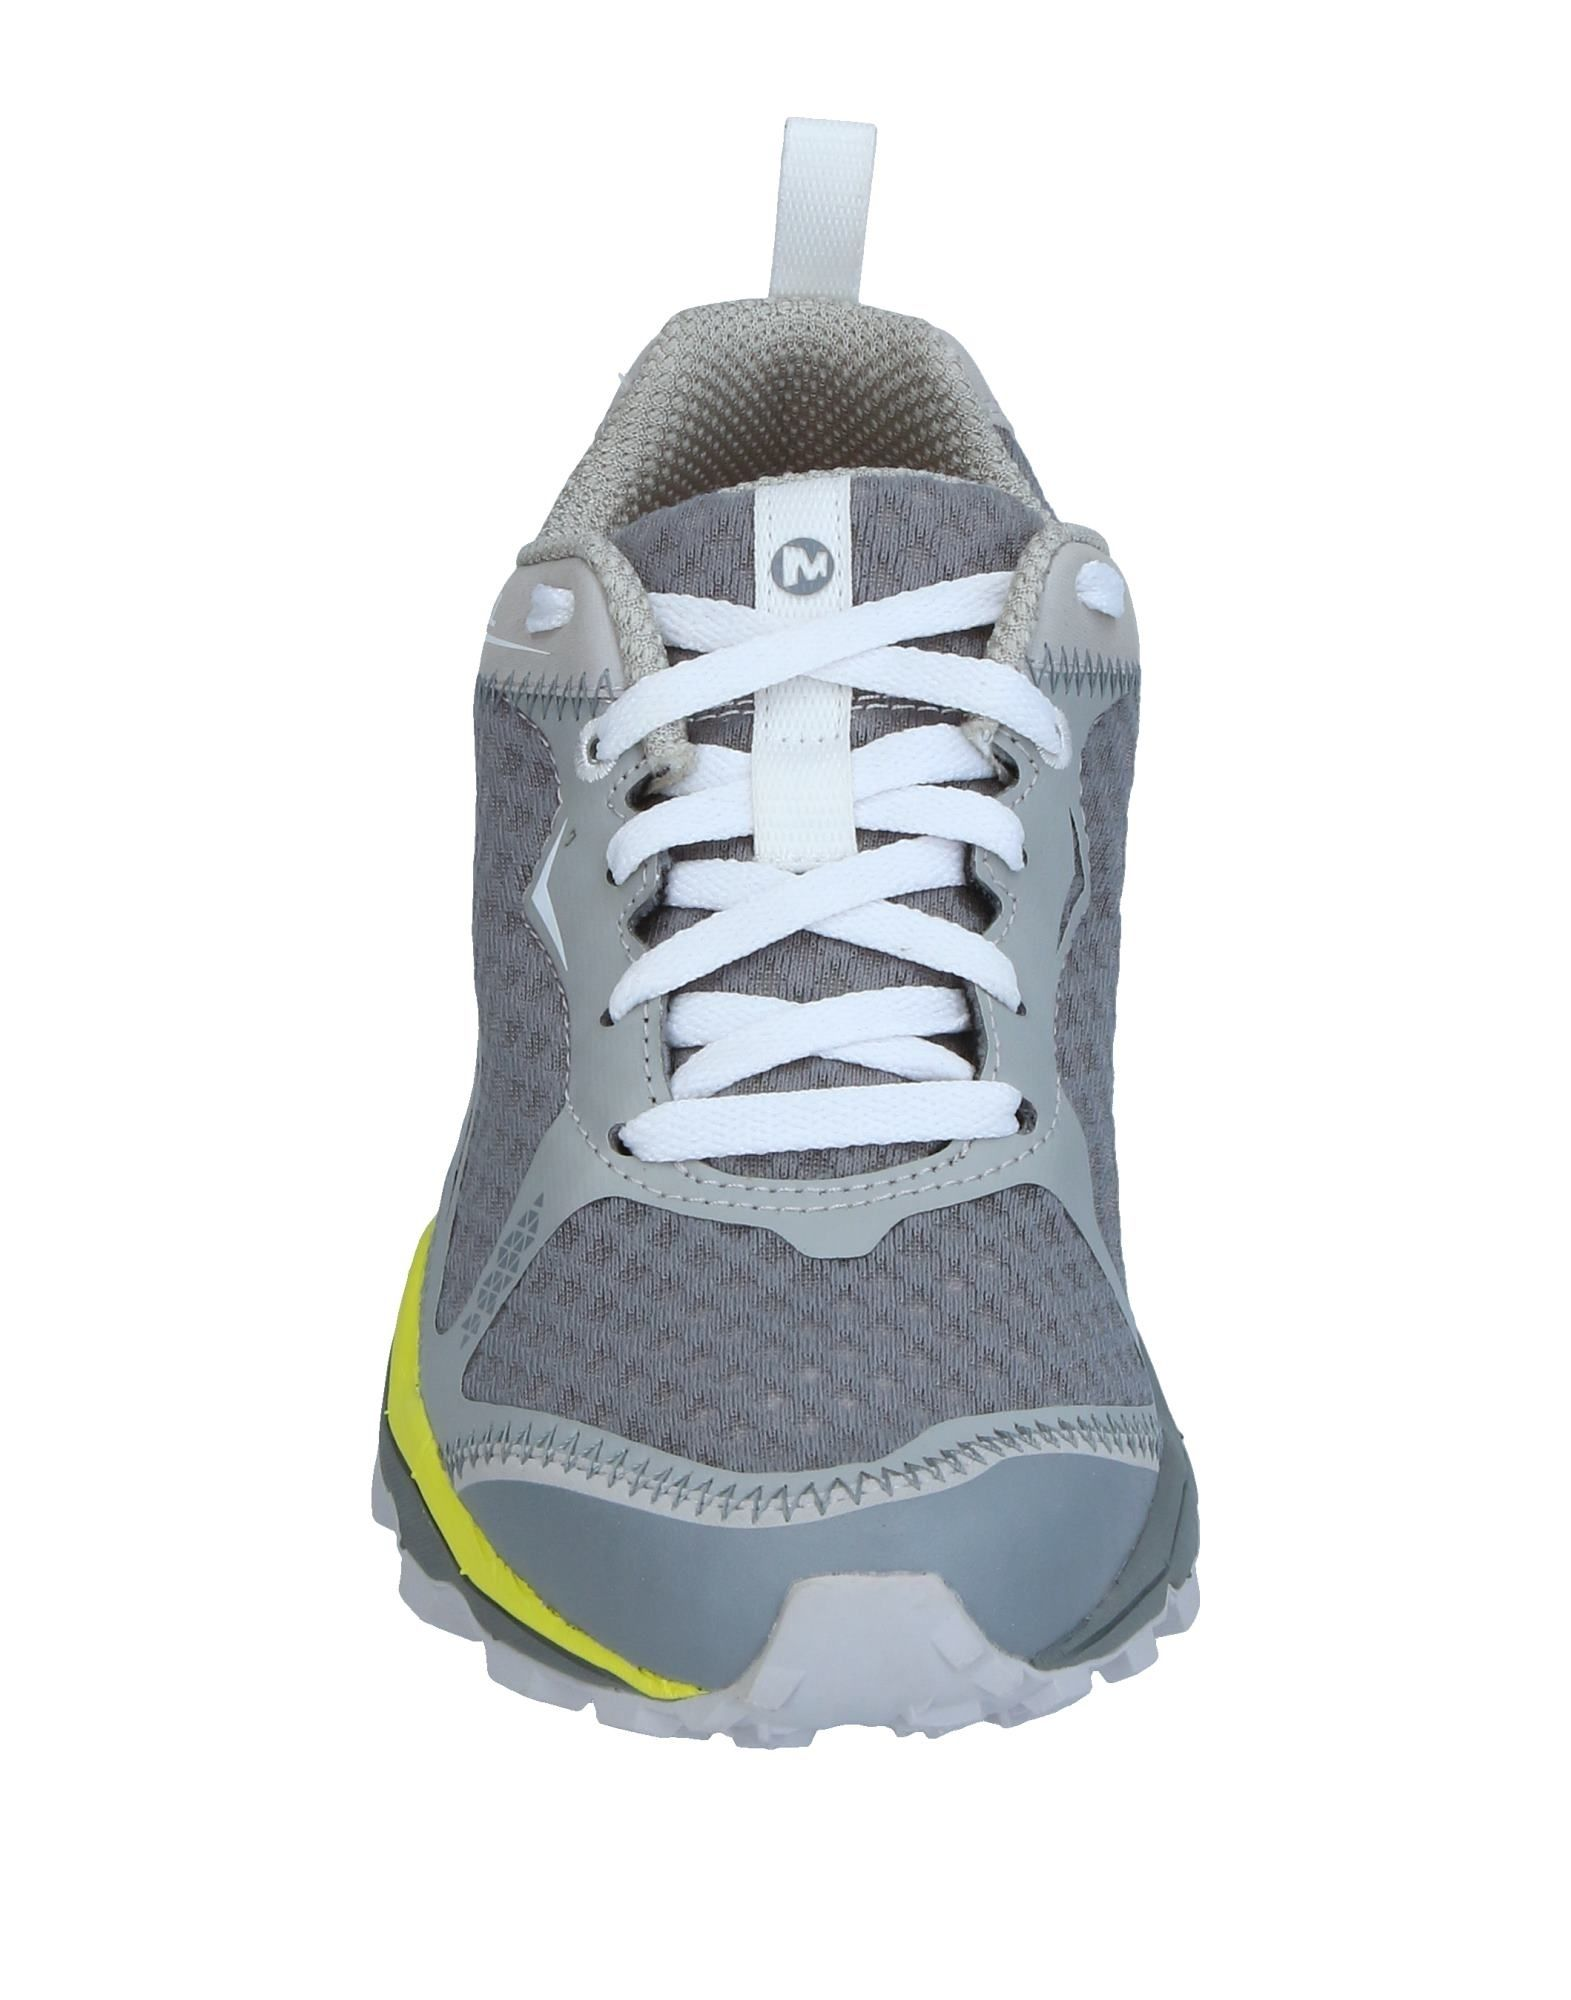 Merrell Sneakers - Women Merrell Merrell Merrell Sneakers online on  United Kingdom - 11377129QK eabb36